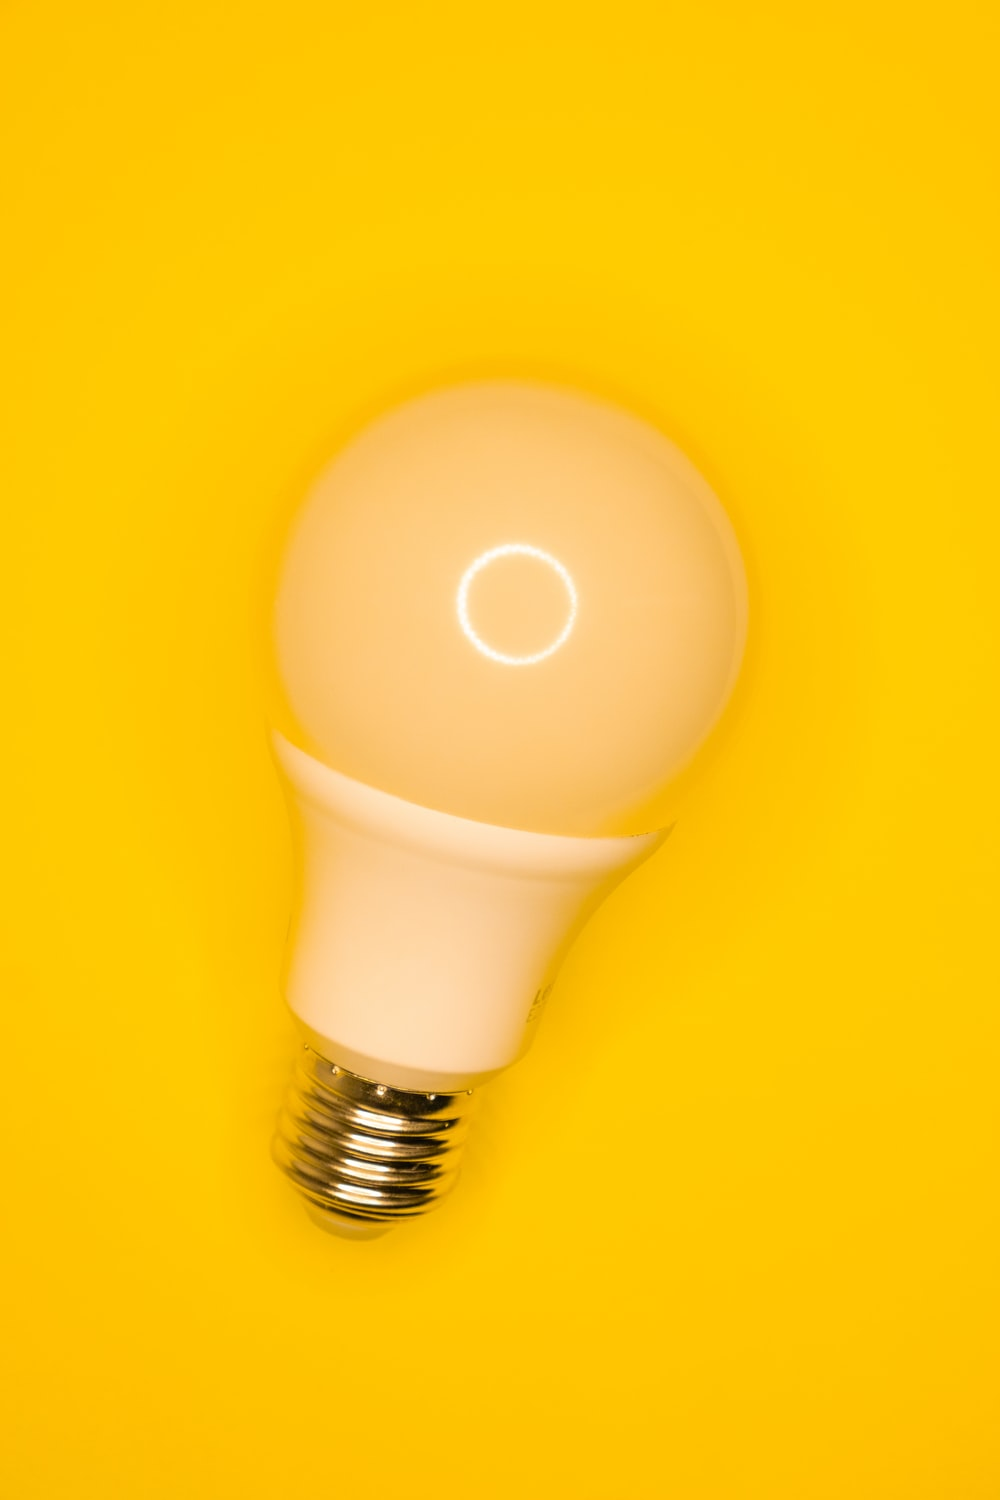 white light bulb on yellow surface